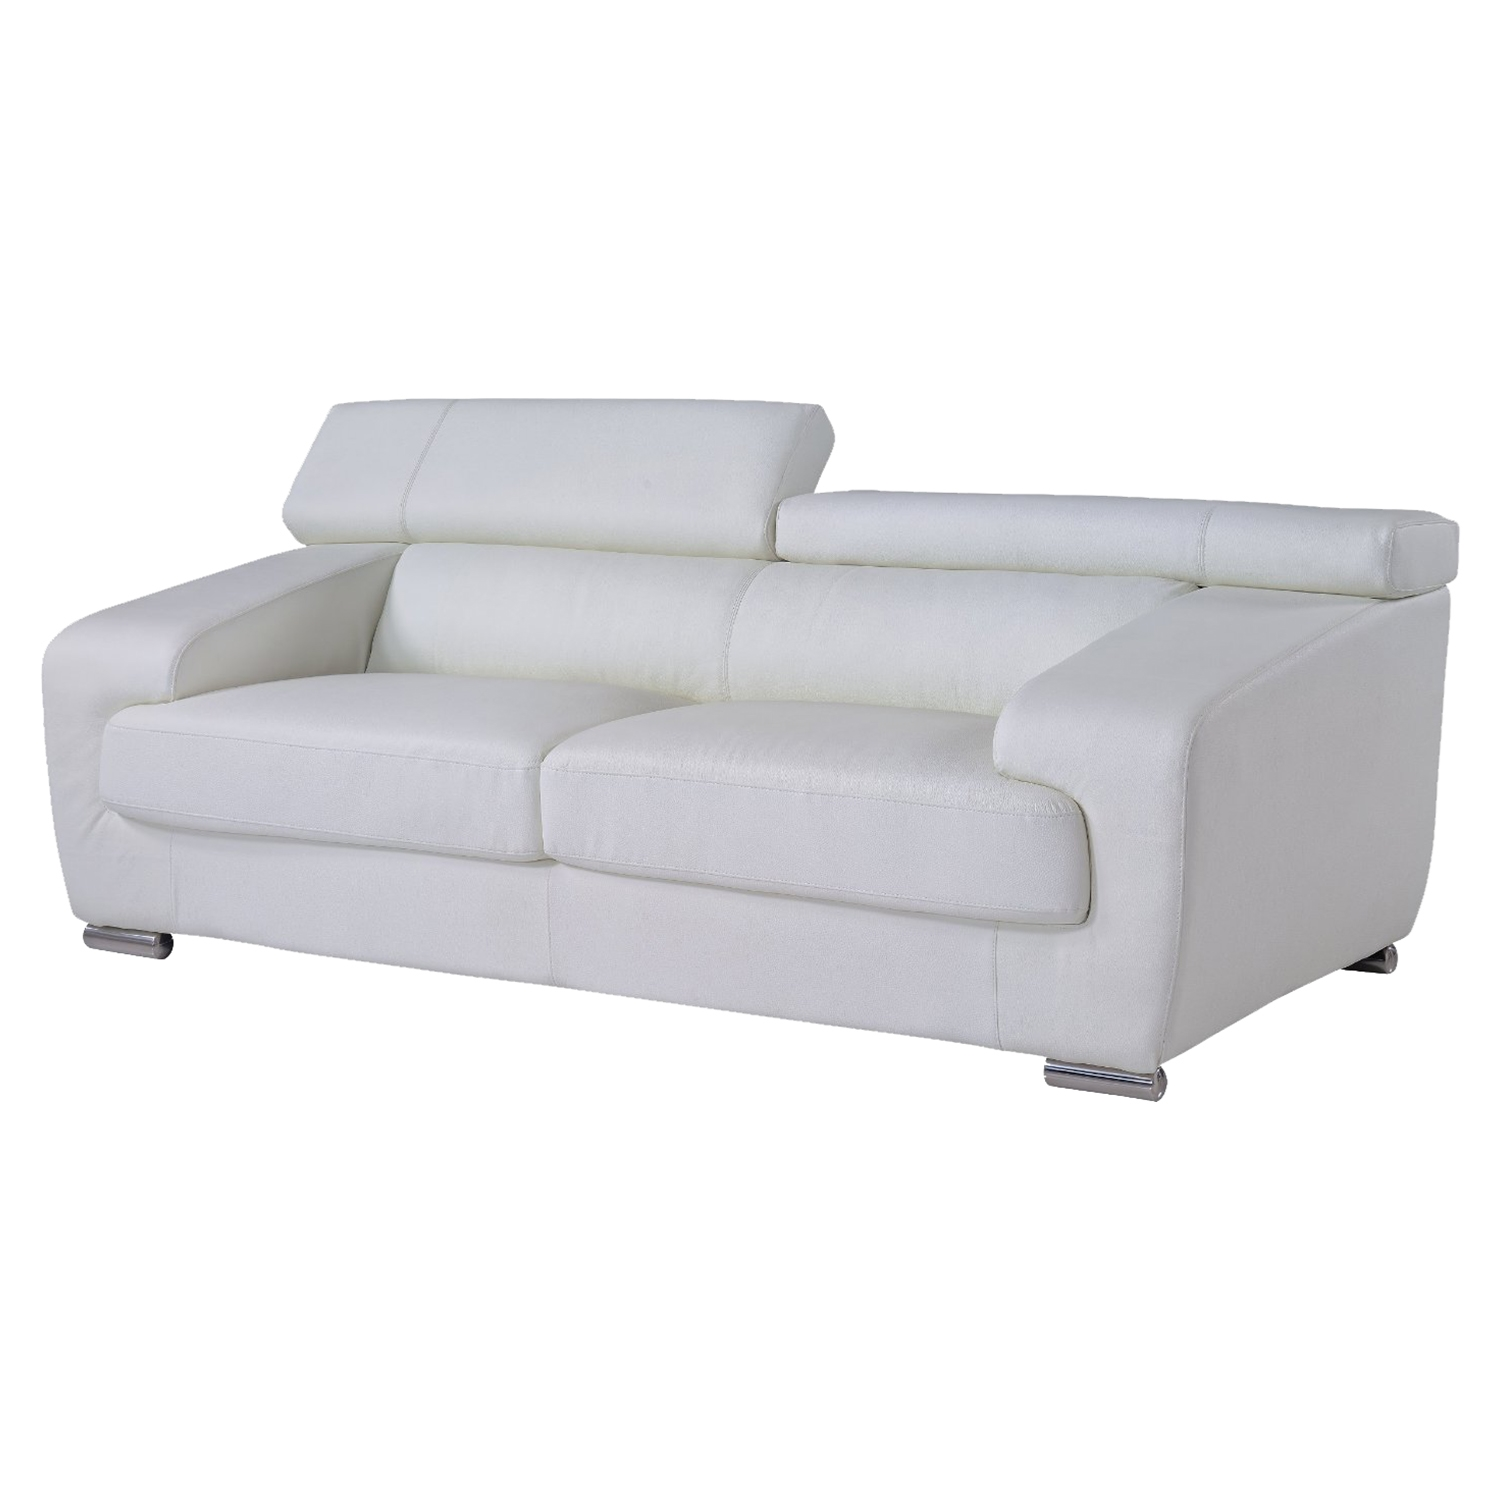 Caitlyn Sofa with Headrest - White Leather